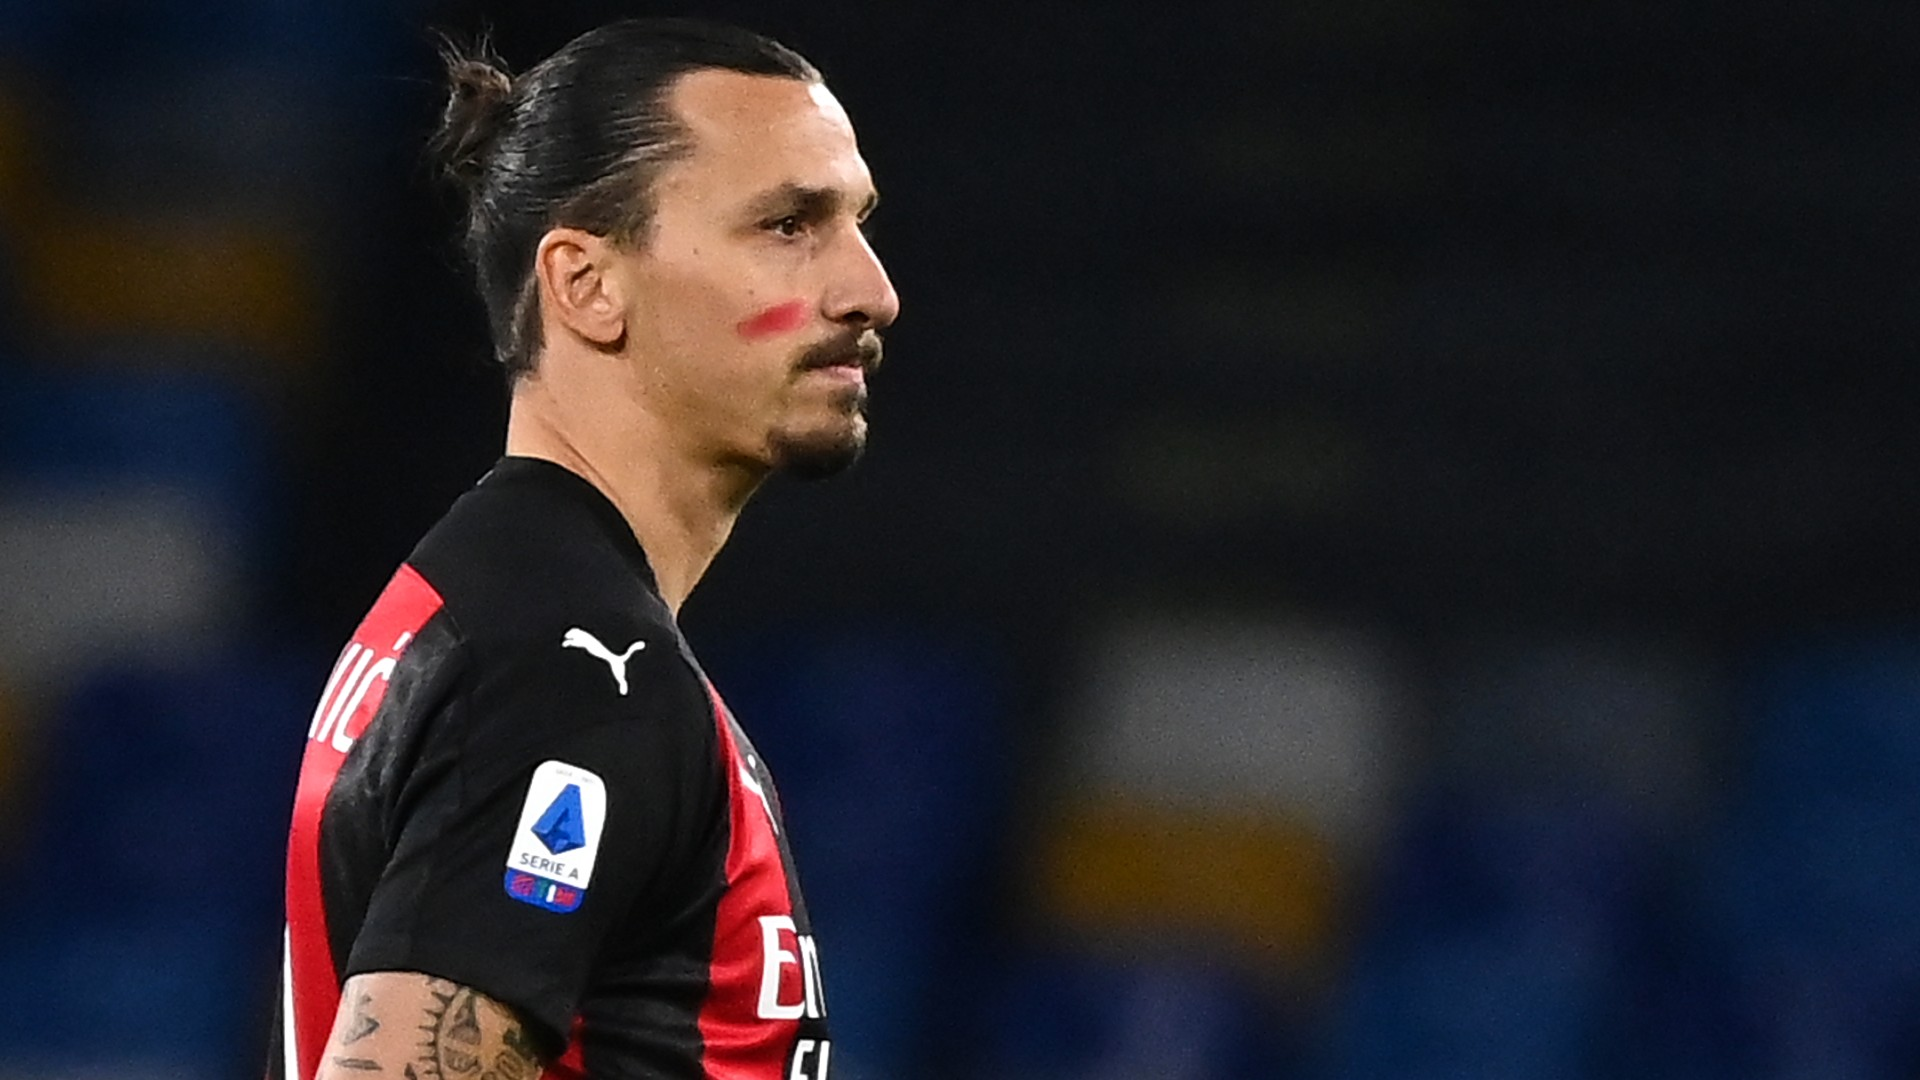 AC Milan star Ibrahimovic decided to retire in the summer, only to change his mind